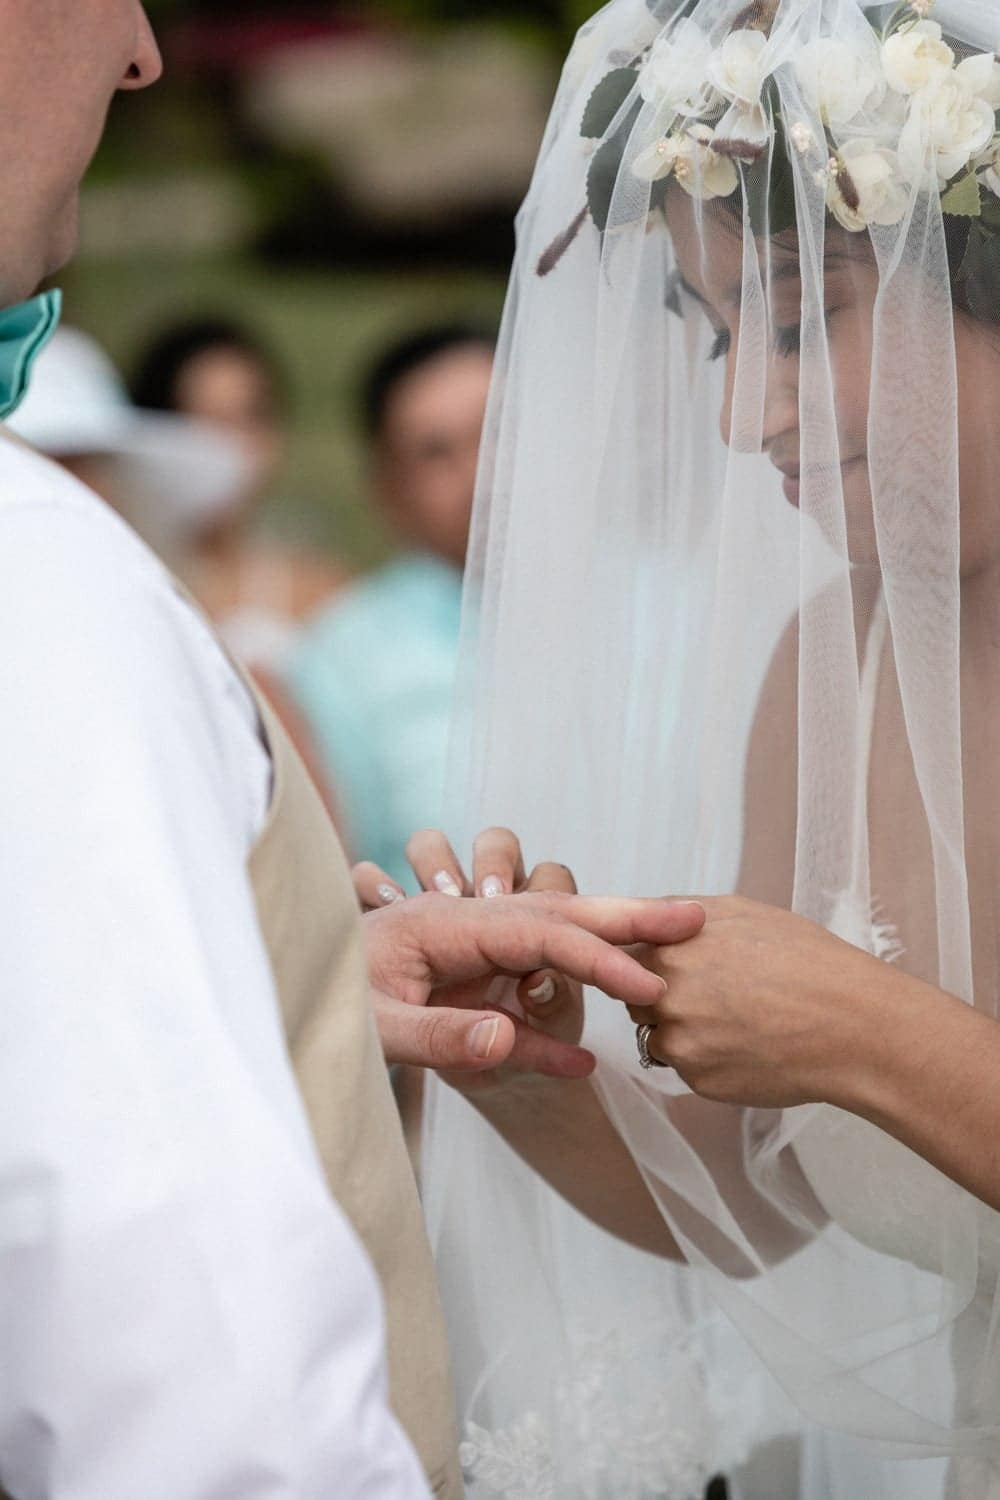 Groom watches bride in beautiful wedding dress put ring on his finger.